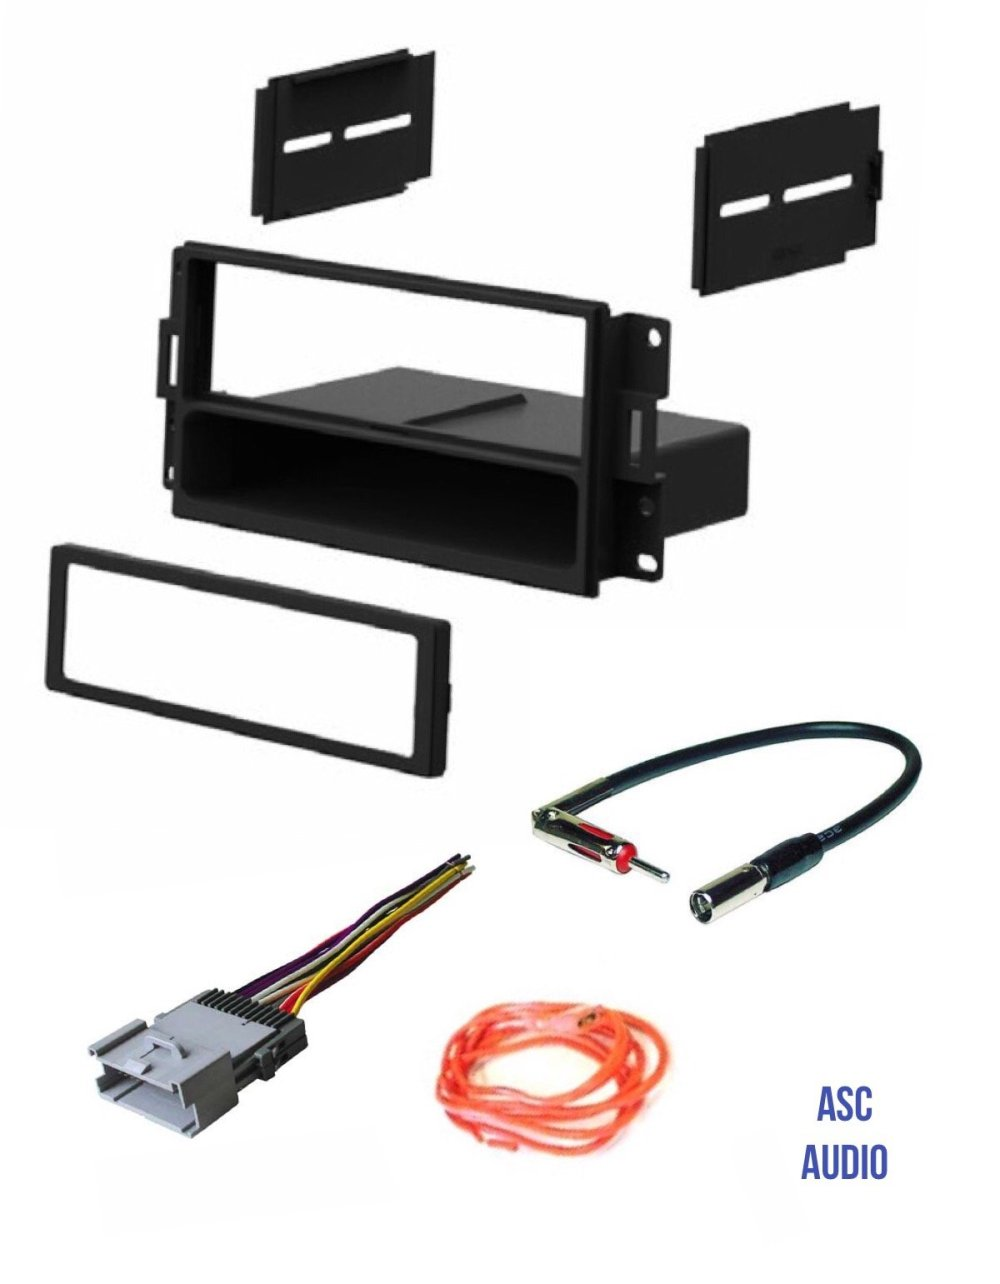 medium resolution of get quotations asc audio car stereo radio dash install kit wire harness and antenna adapter to